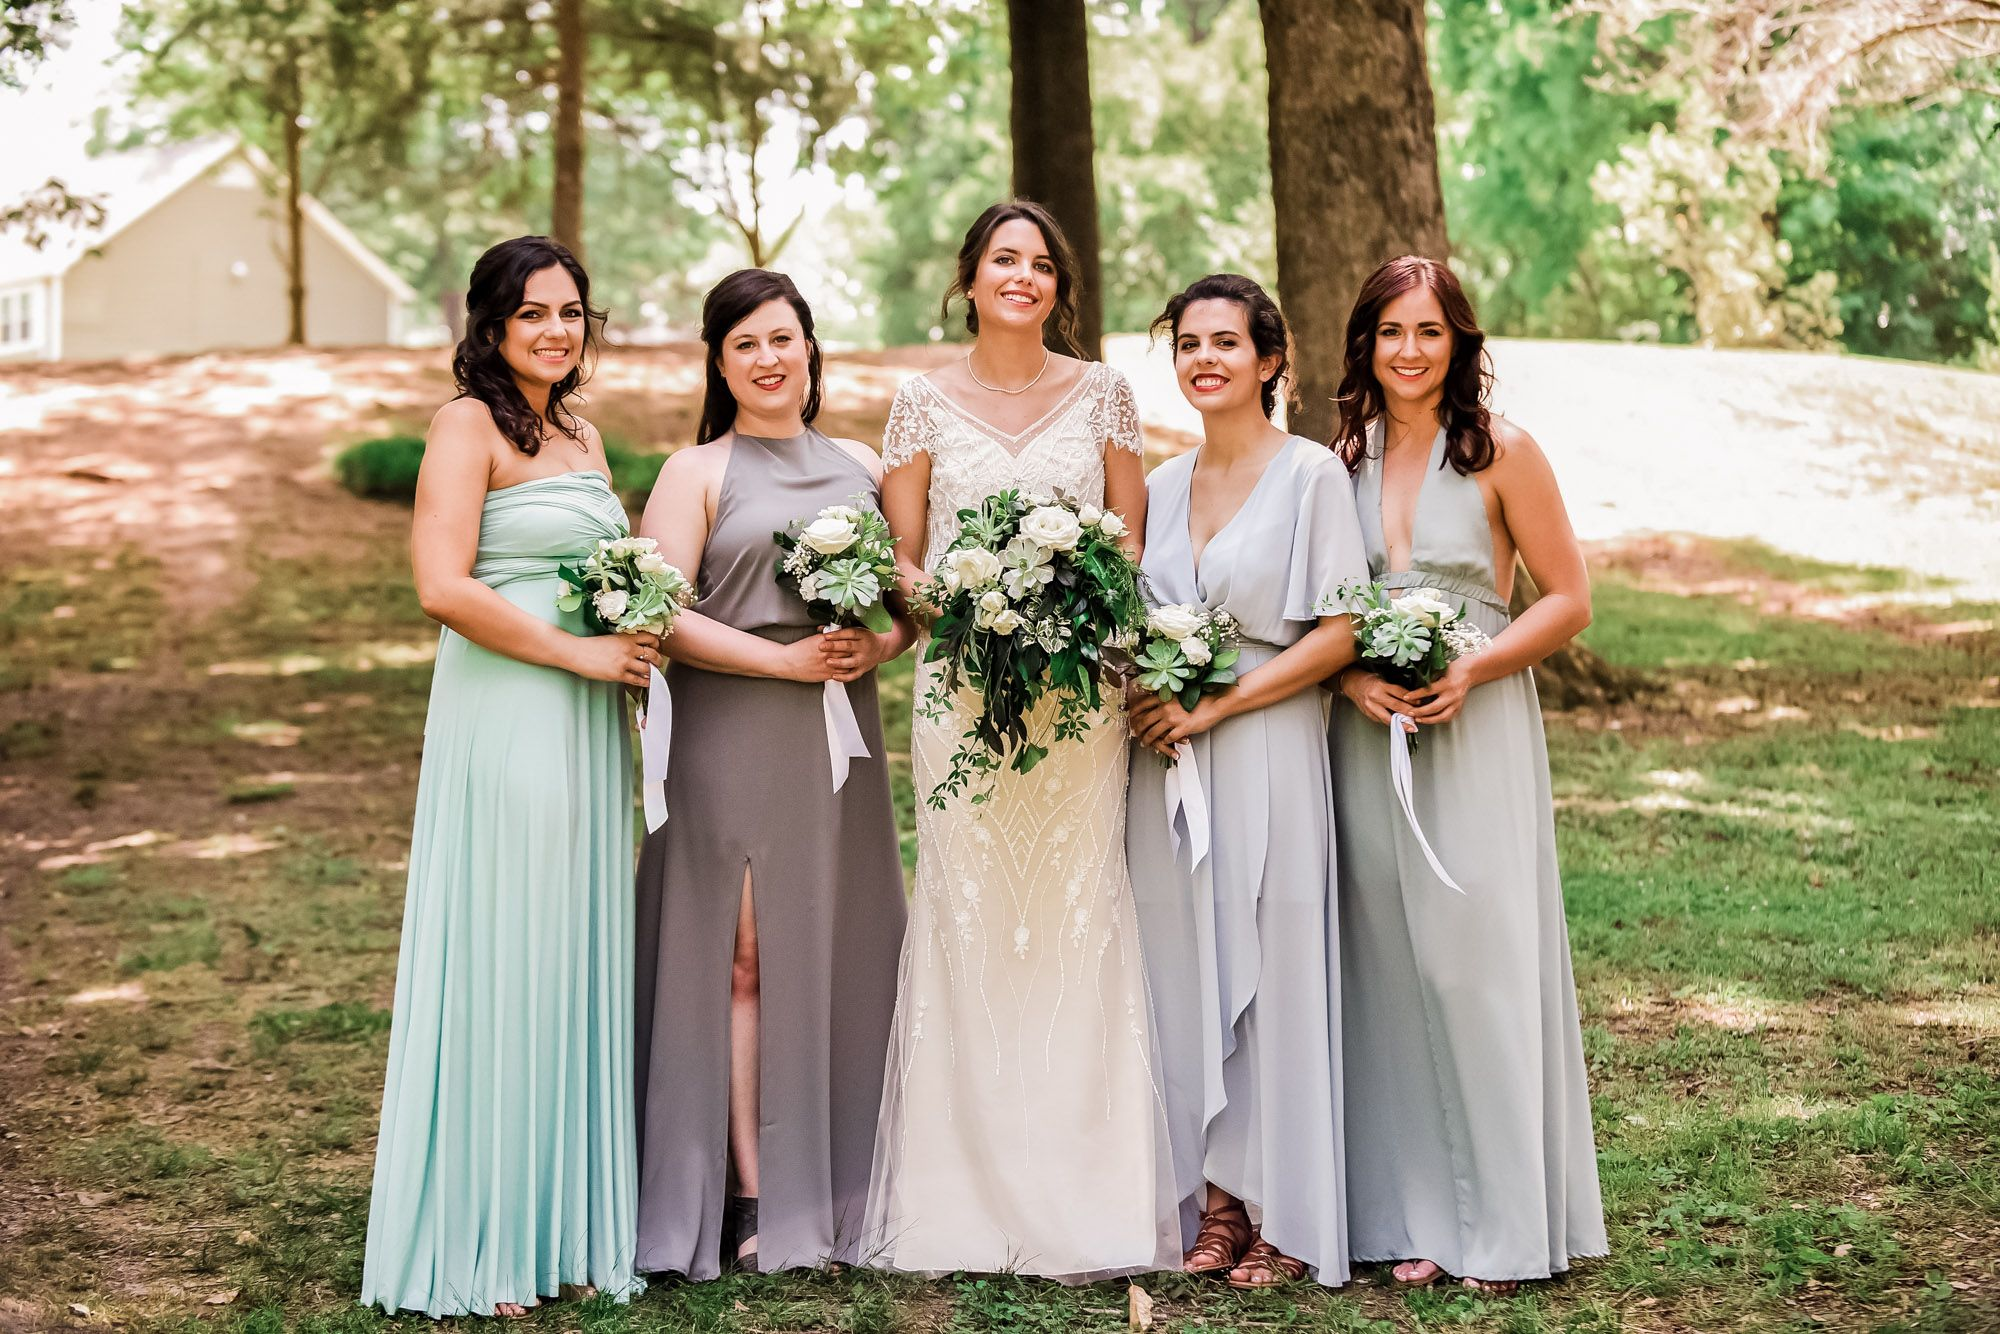 Wedding dresses gone wrong  You canut go wrong with these  best color palettes for outdoor